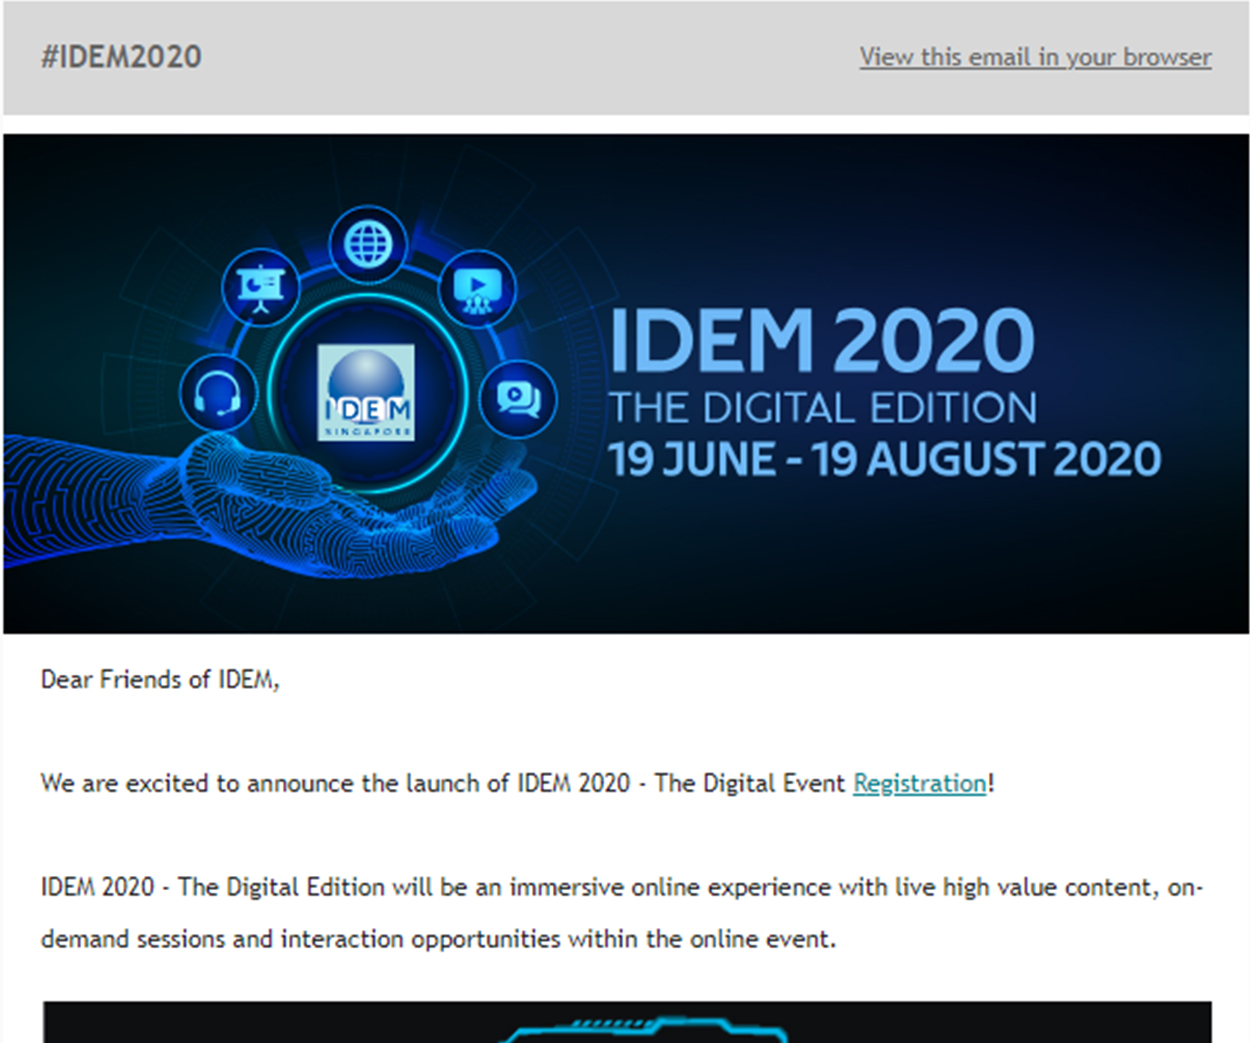 IDEM 2020 Newsletter Digital - News